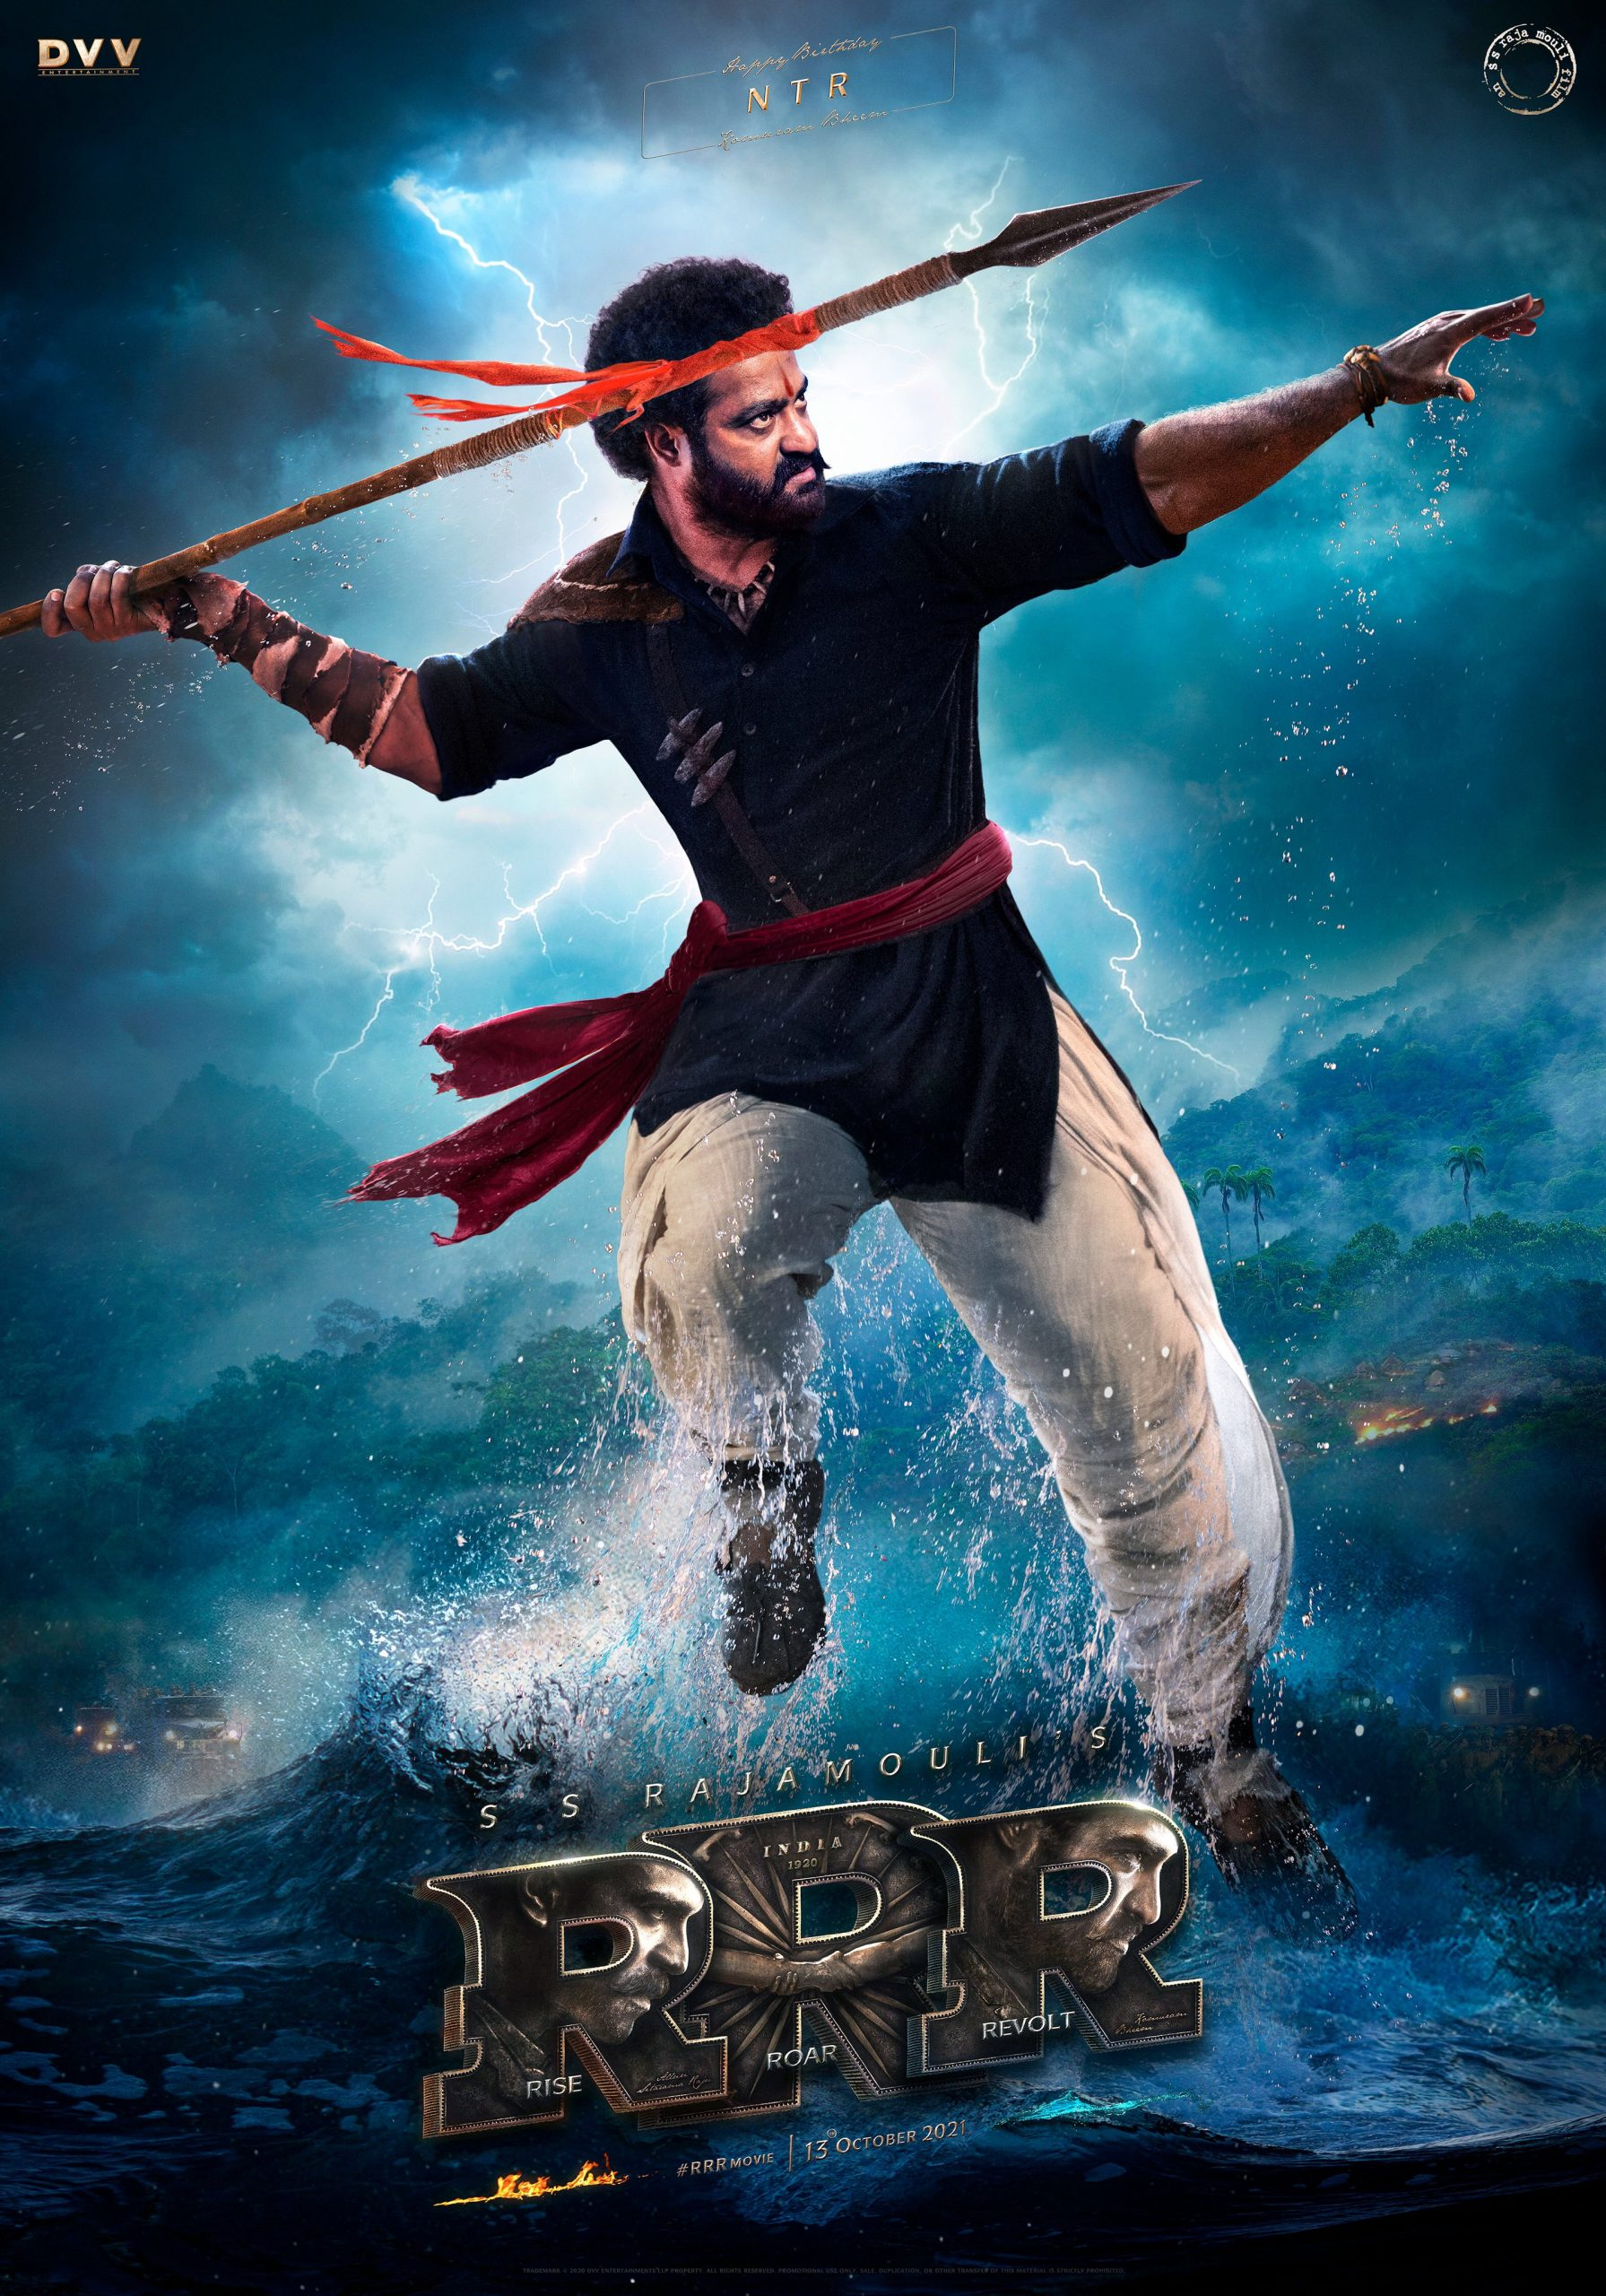 SS Rajamouli unveils Intense poster of Jr NTR from RRR